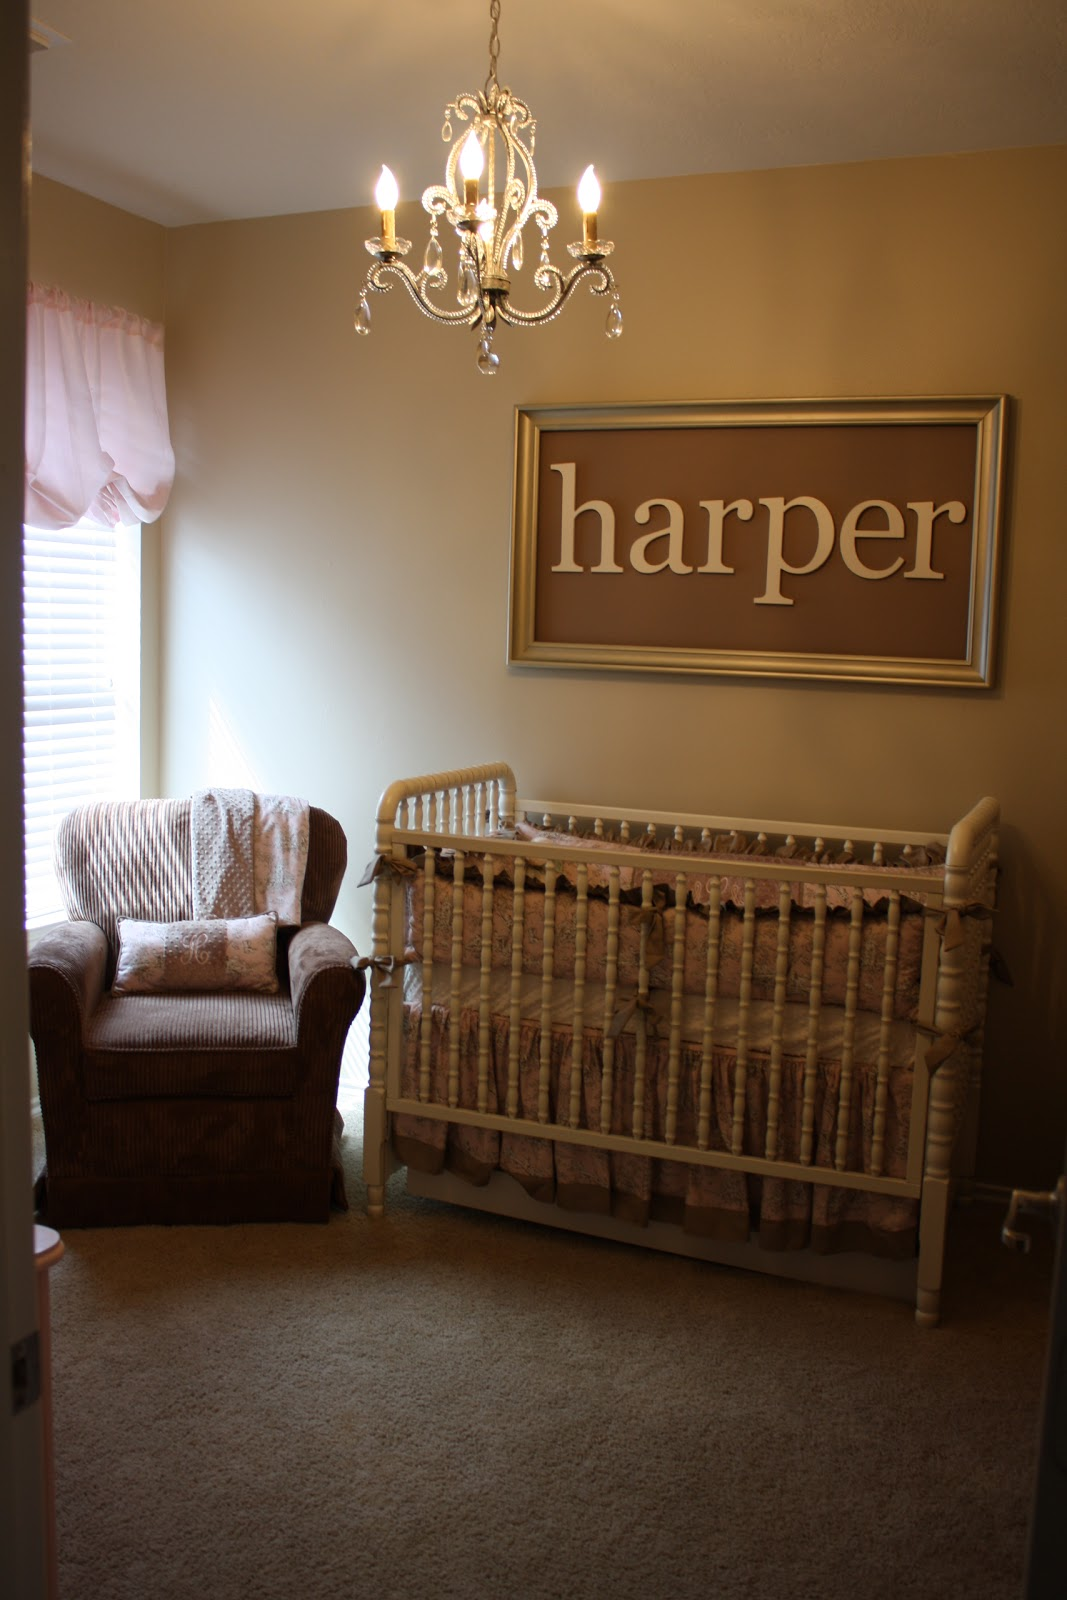 The boyd family harper 39 s nursery for Above the crib decoration ideas